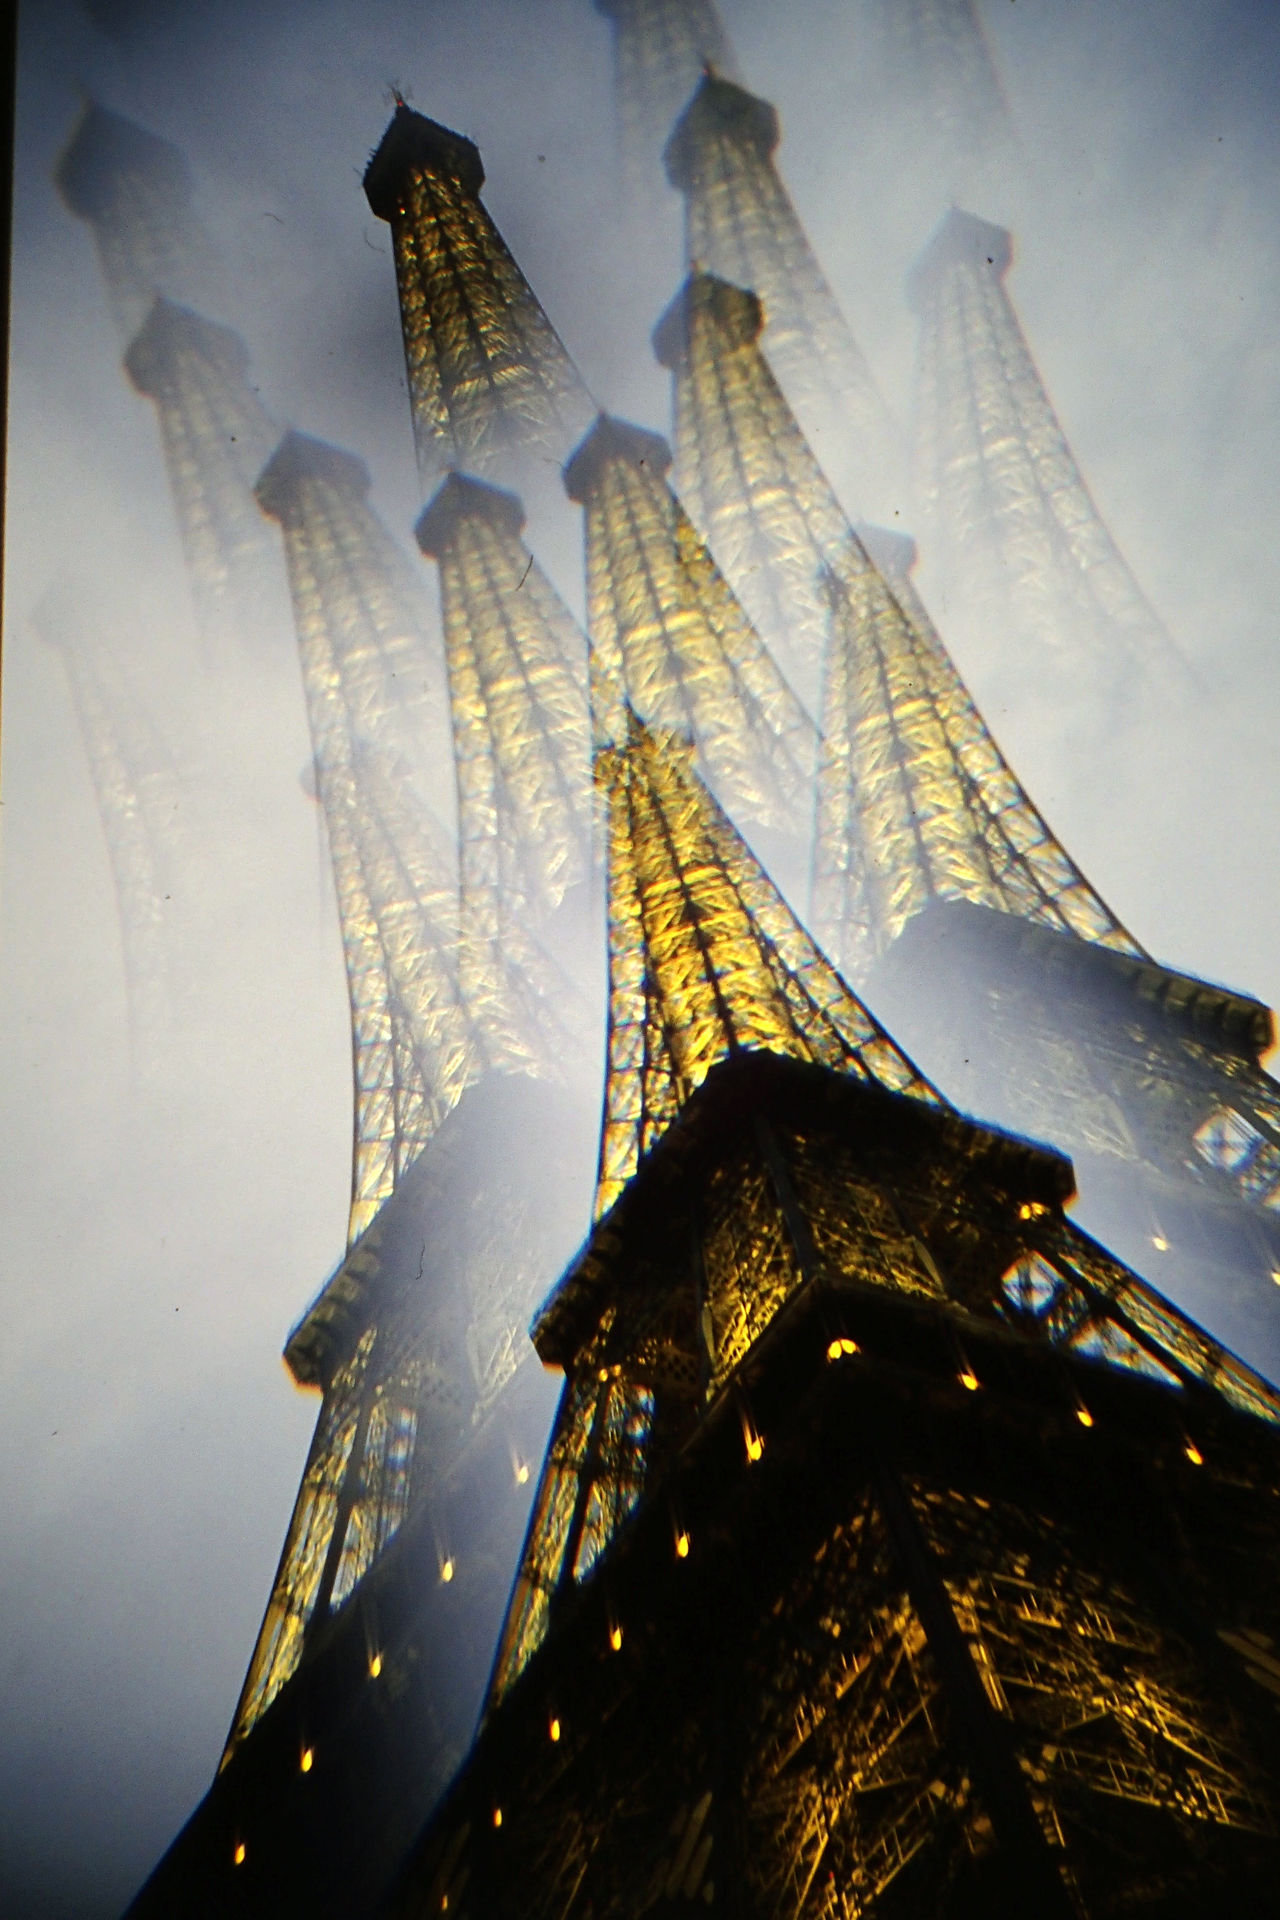 Architecture Built Structure City Eiffel Tower France Low Angle View No People Outdoors Paris Special Effects Travel Destinations